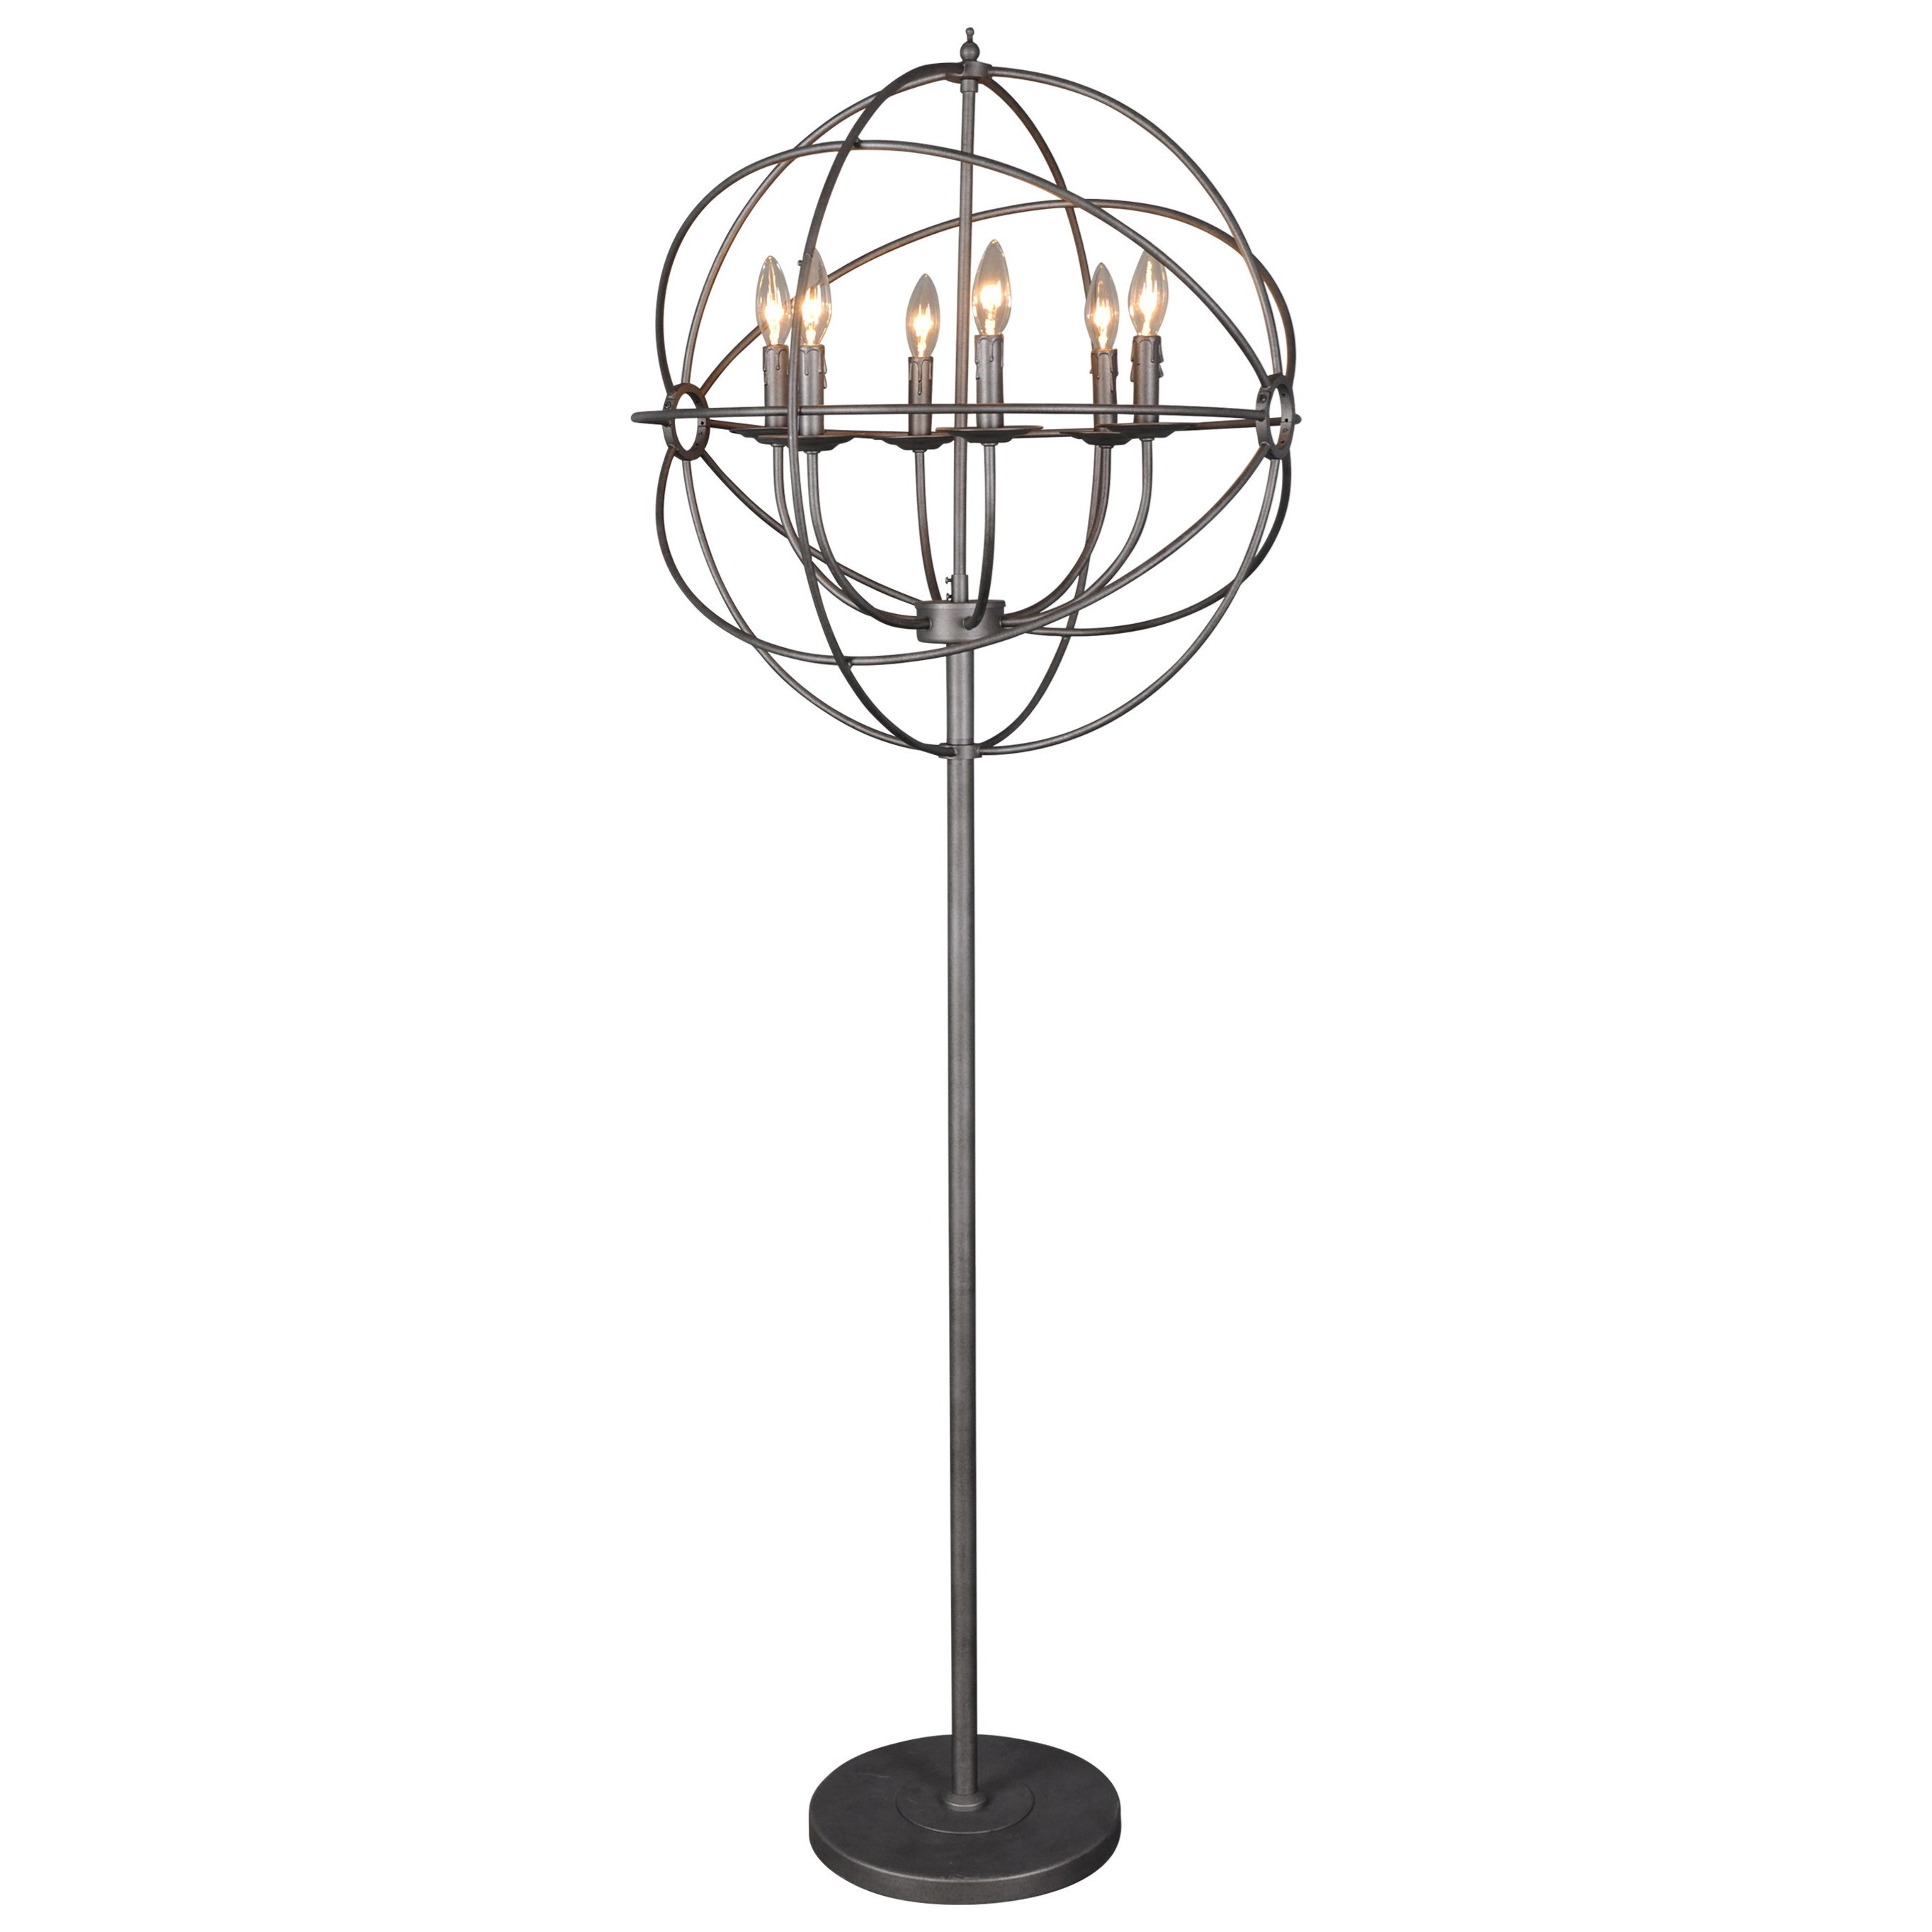 Moe S Home Collection Lighting Rossana Floor Lamp